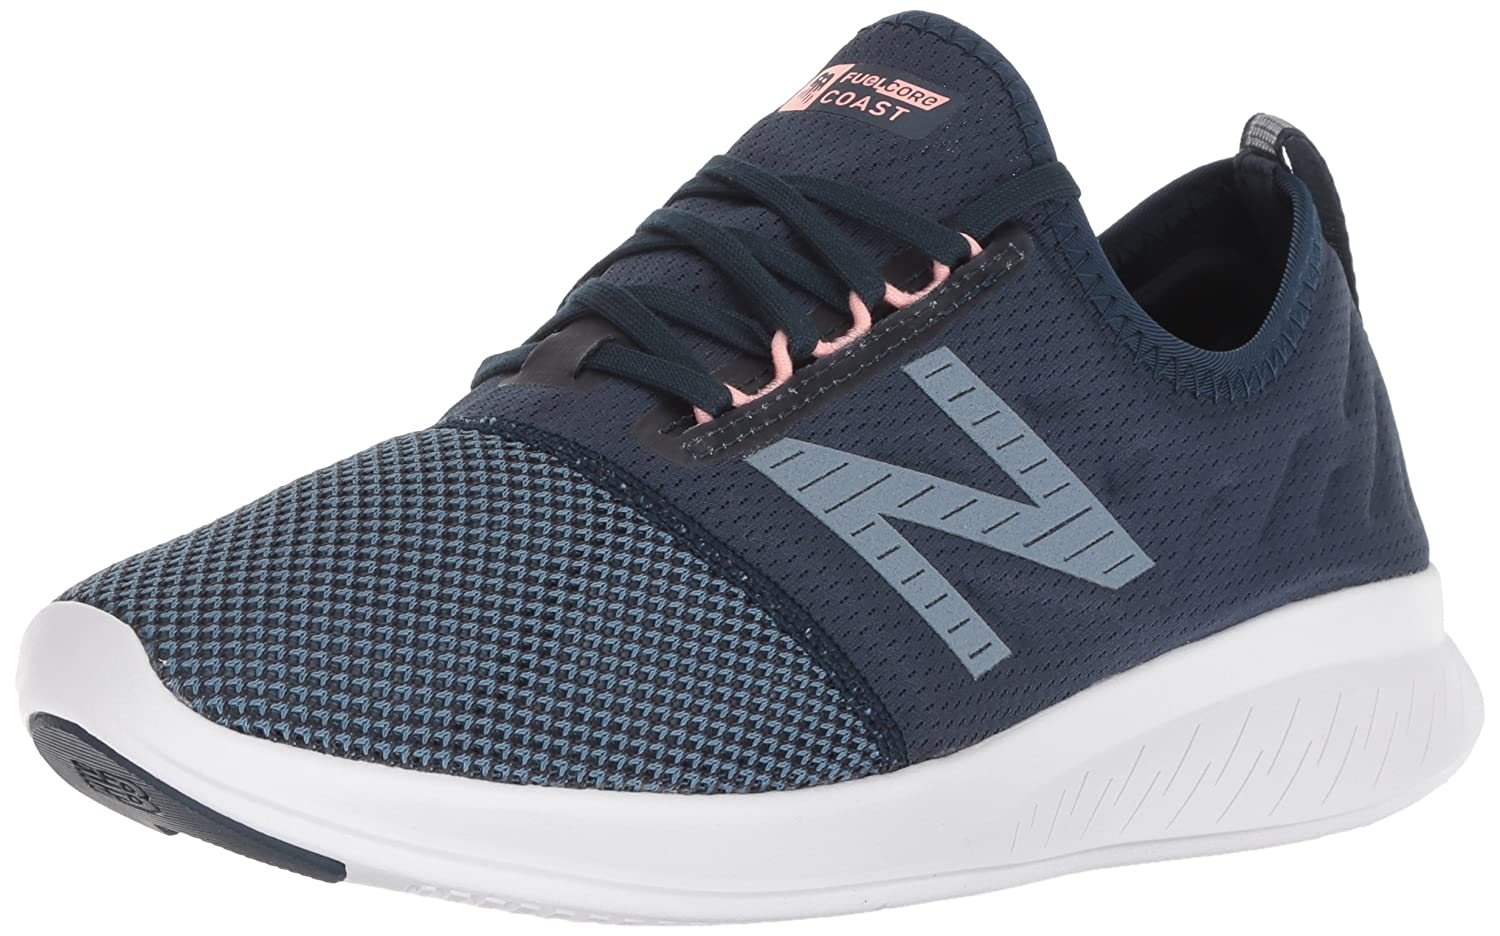 New Balance Women's Coast V4 FuelCore Running Shoe B075R7JN5X 5.5 B(M) US|Galaxy